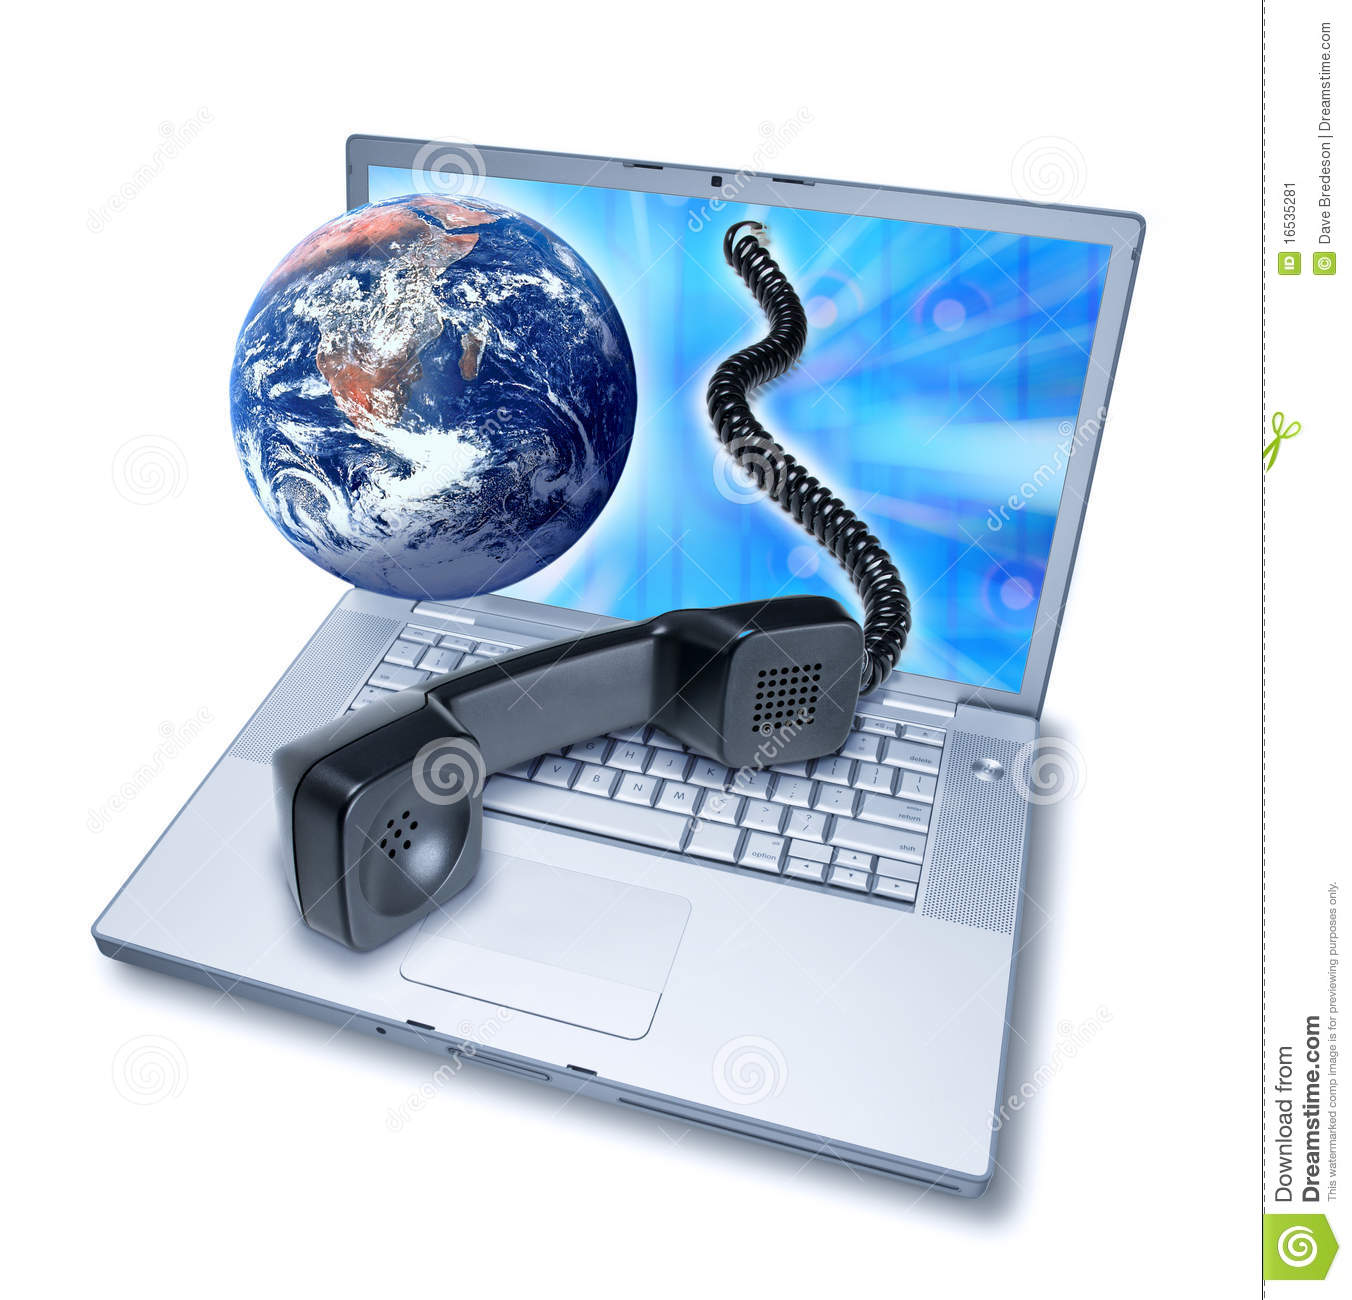 Computer Video Phone Teleconference Stock Image - Image: 16535281